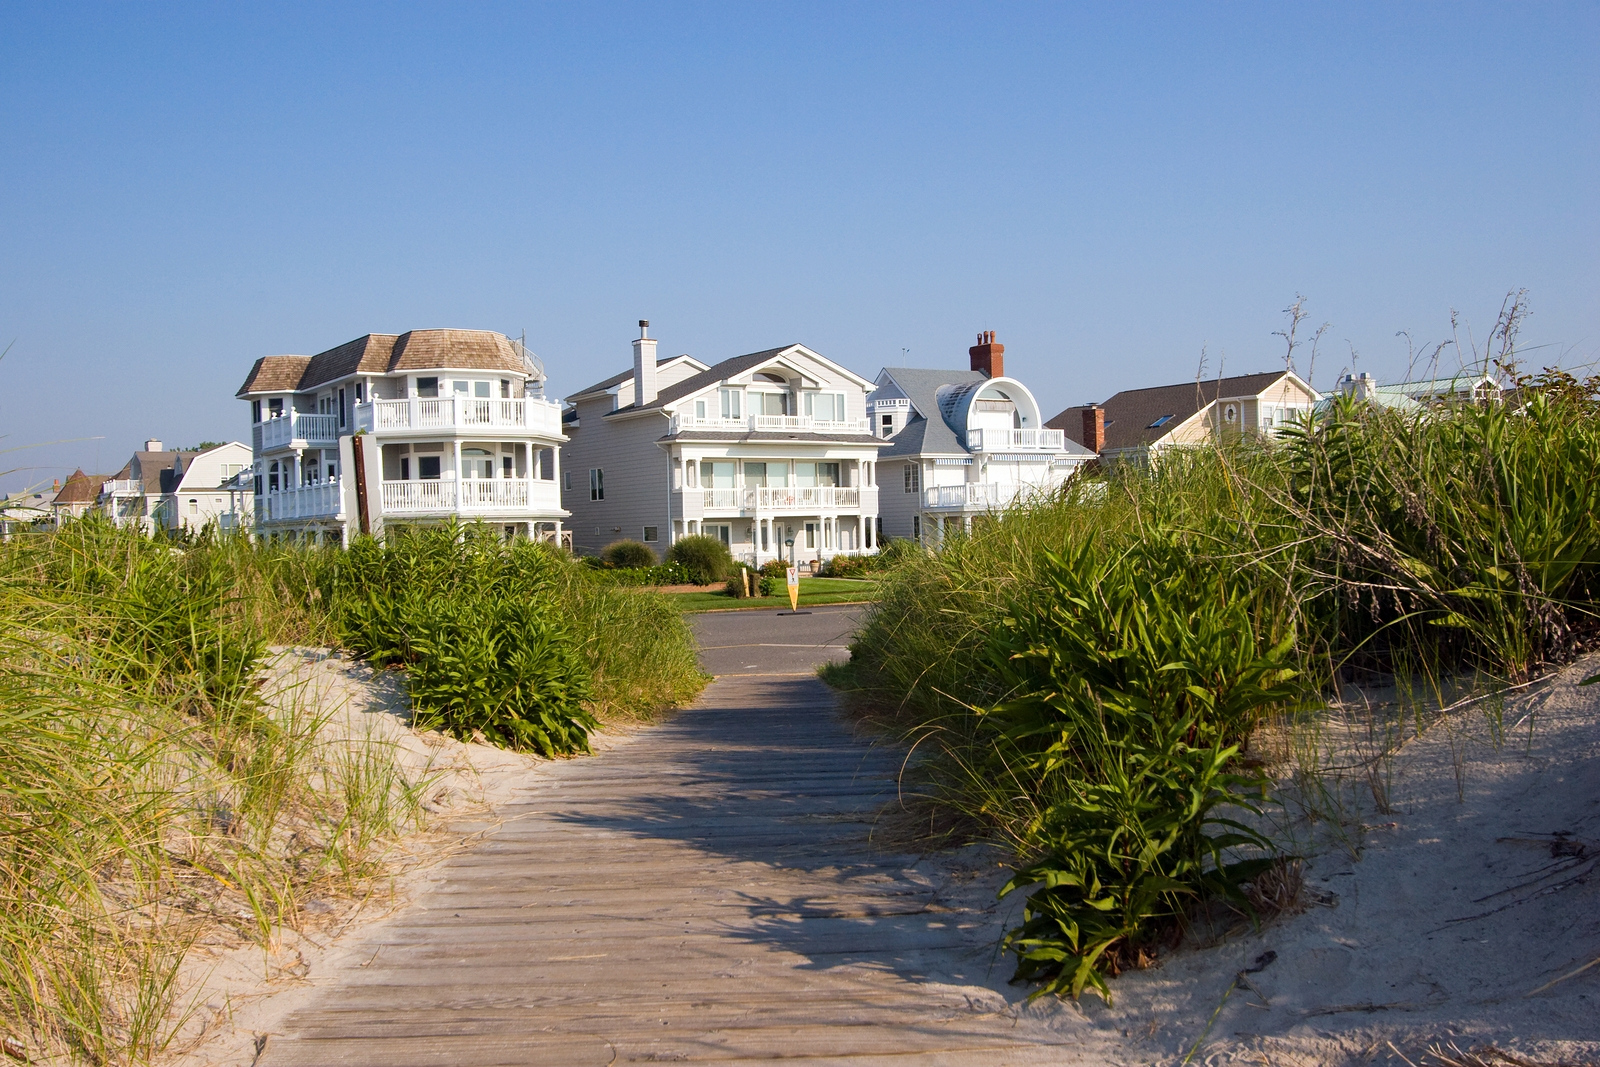 Thinking About Buying a Beach House on LBI? Fall is a great time!